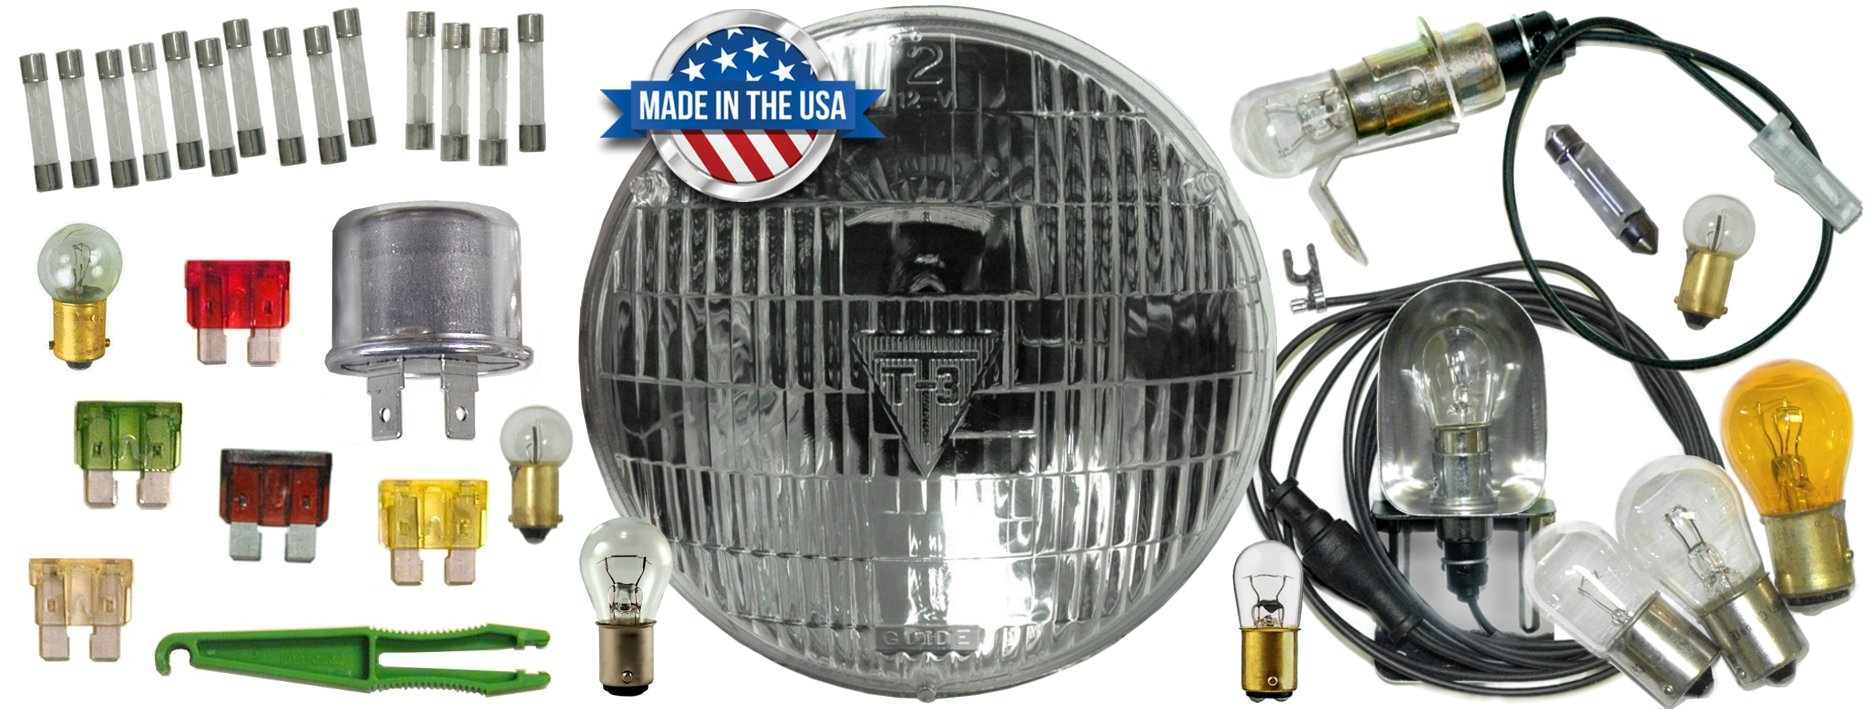 T3 T-3 Headlight Bulbs and Lighting for Classic cars